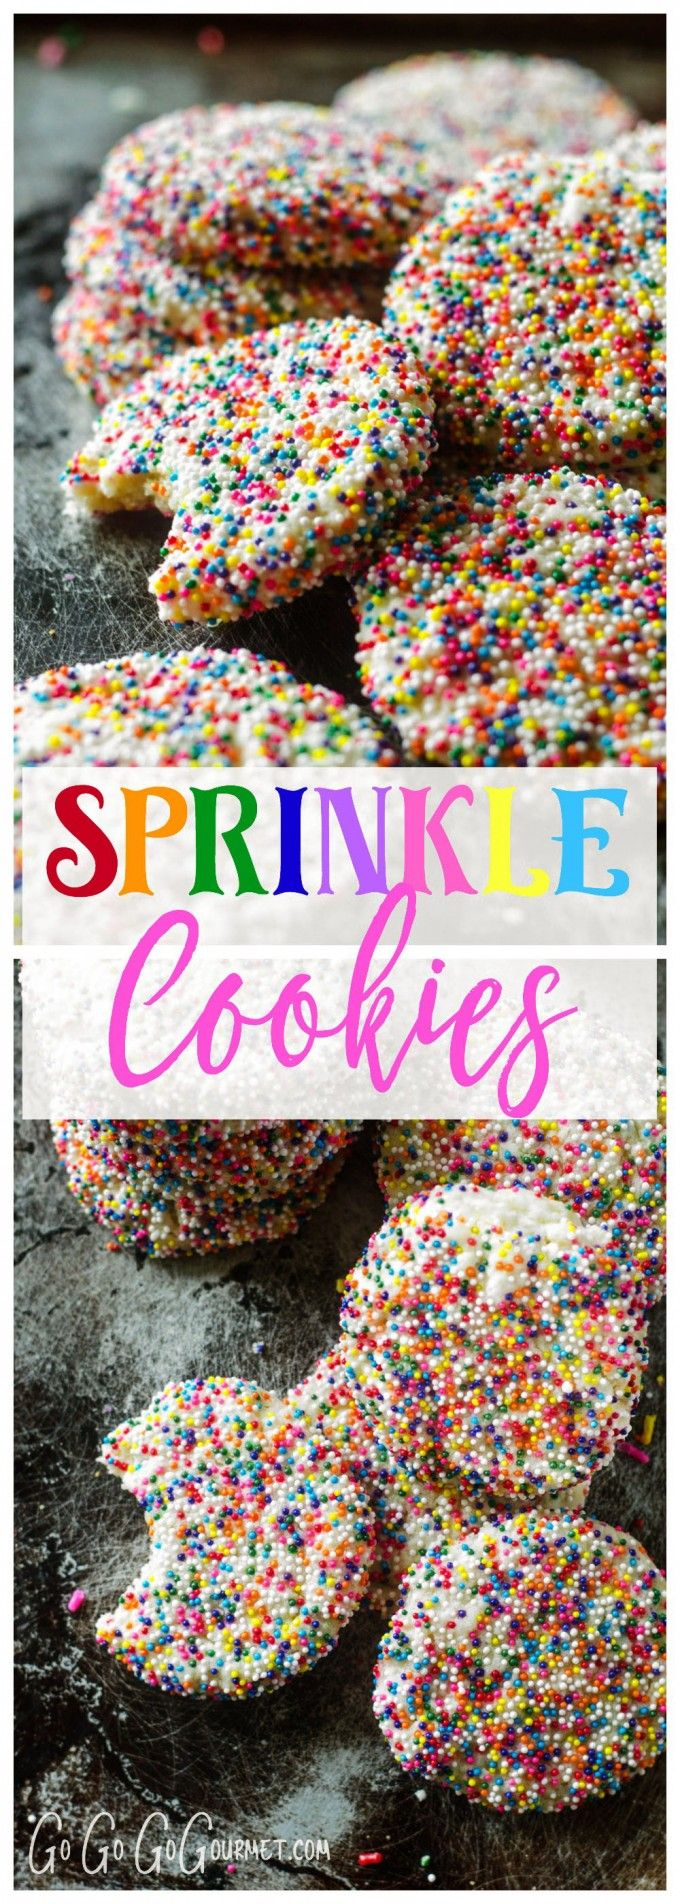 You can never have too many sprinkles! | Sprinkle Cookies via @gogogogourmet                                                                                                                                                                                 More